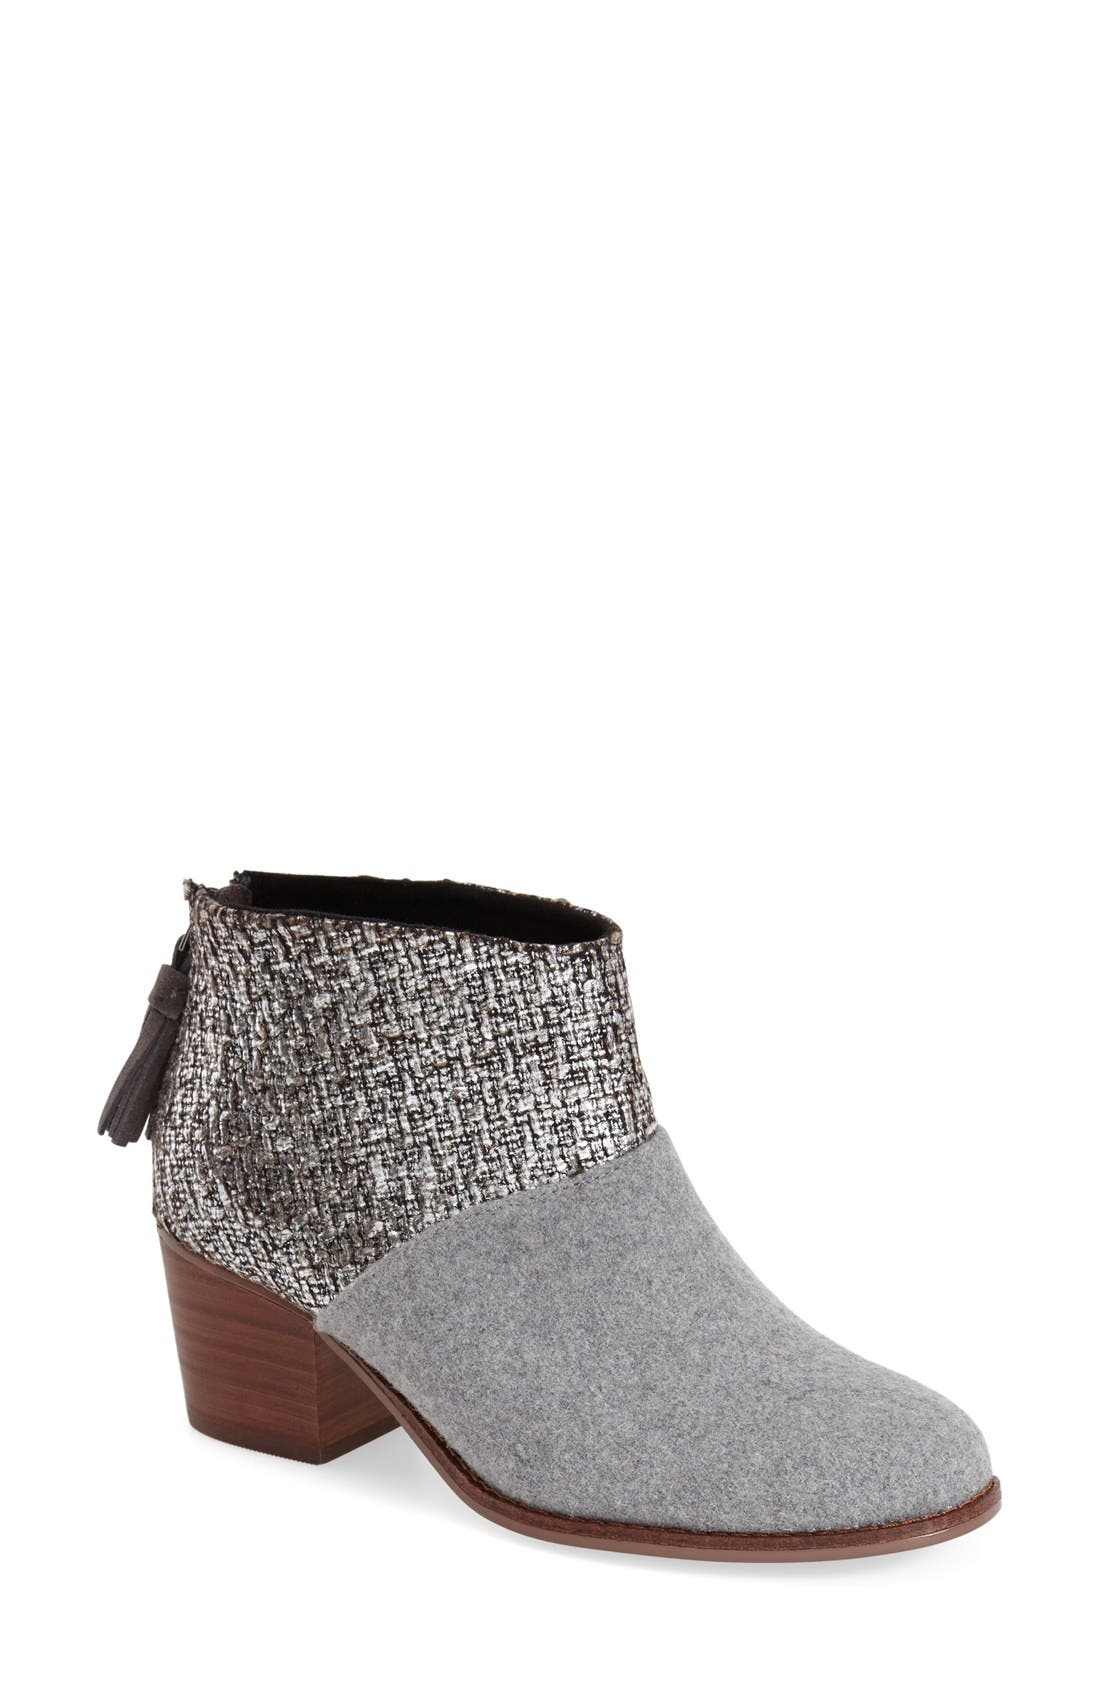 Alternate Image 1 Selected - TOMS 'Leila'  Bootie (Women)